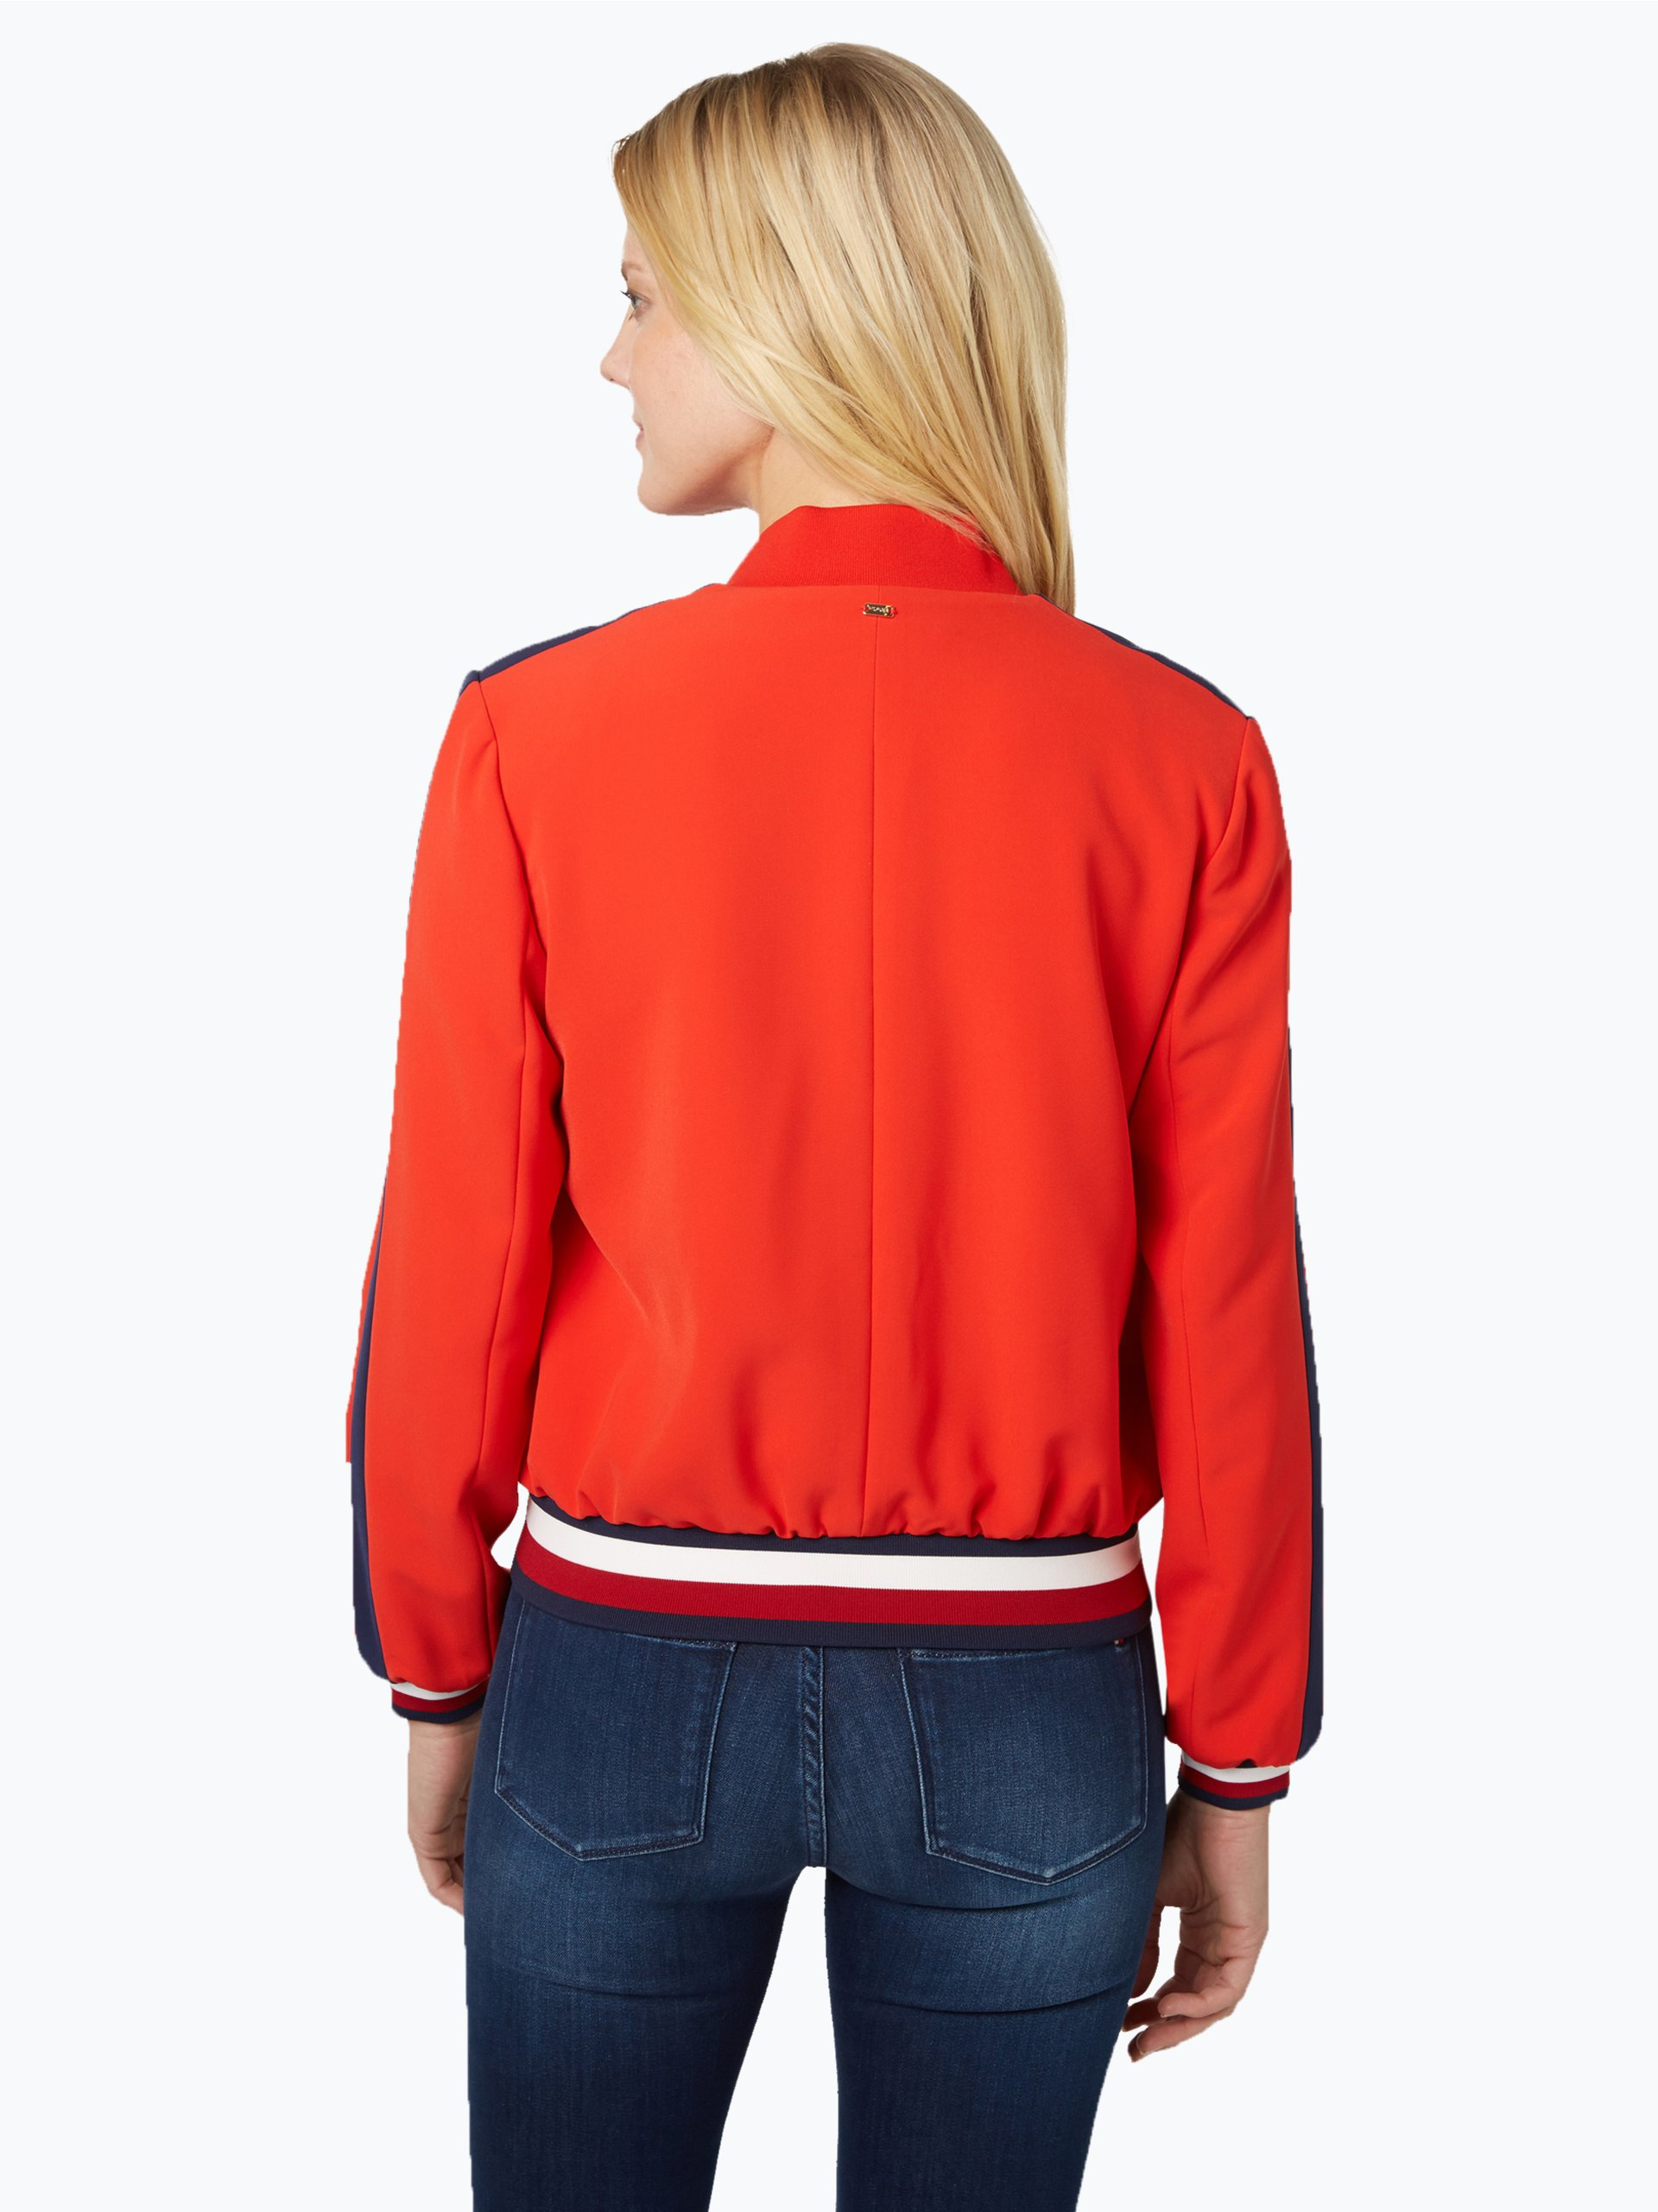 tommy hilfiger damen blazer jillian rot uni online kaufen peek und cloppenburg de. Black Bedroom Furniture Sets. Home Design Ideas